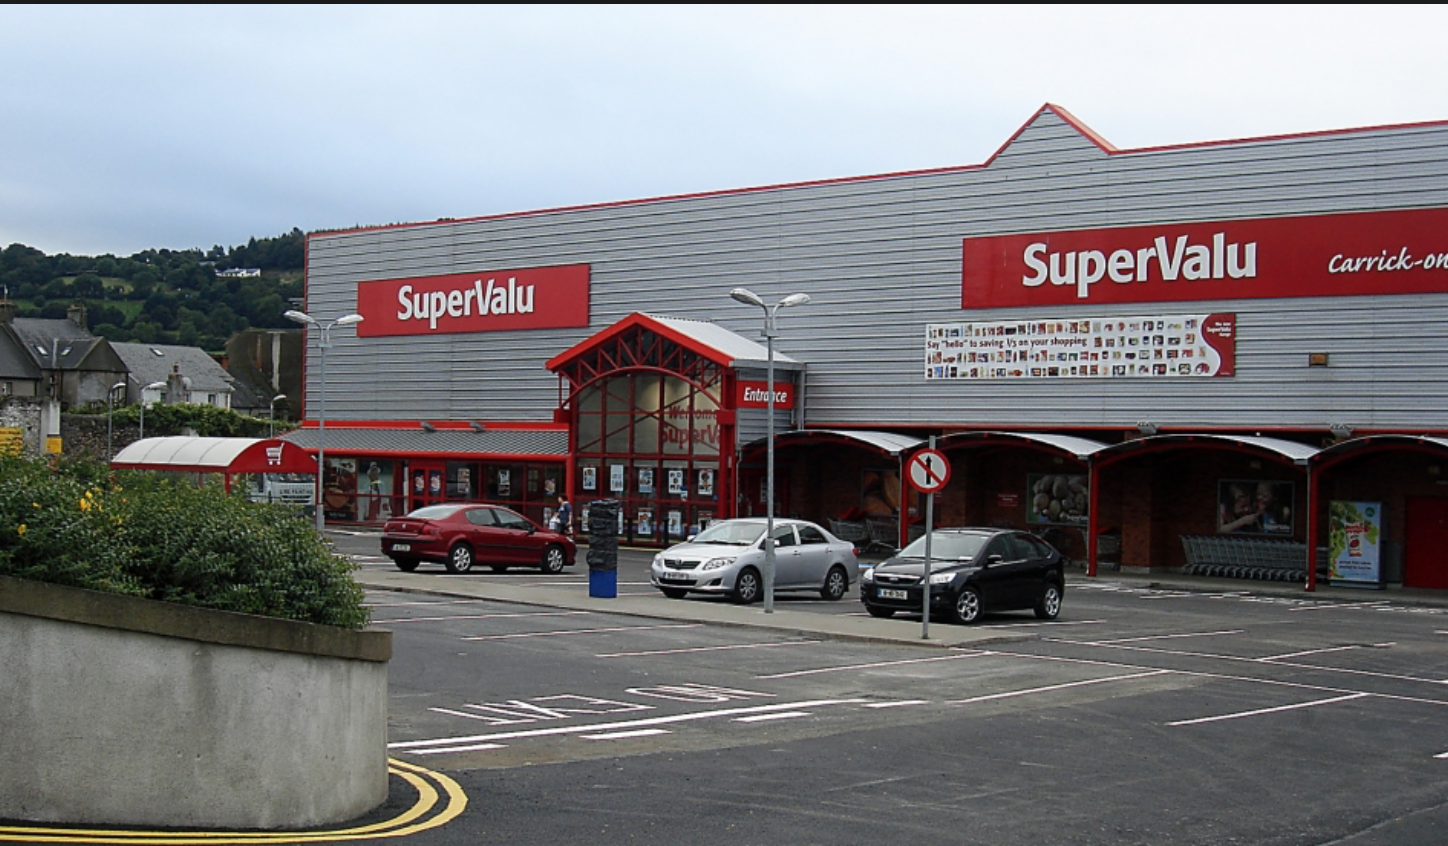 M&E Contract Awarded for Supervalu Carrick-on-Suir Revamp